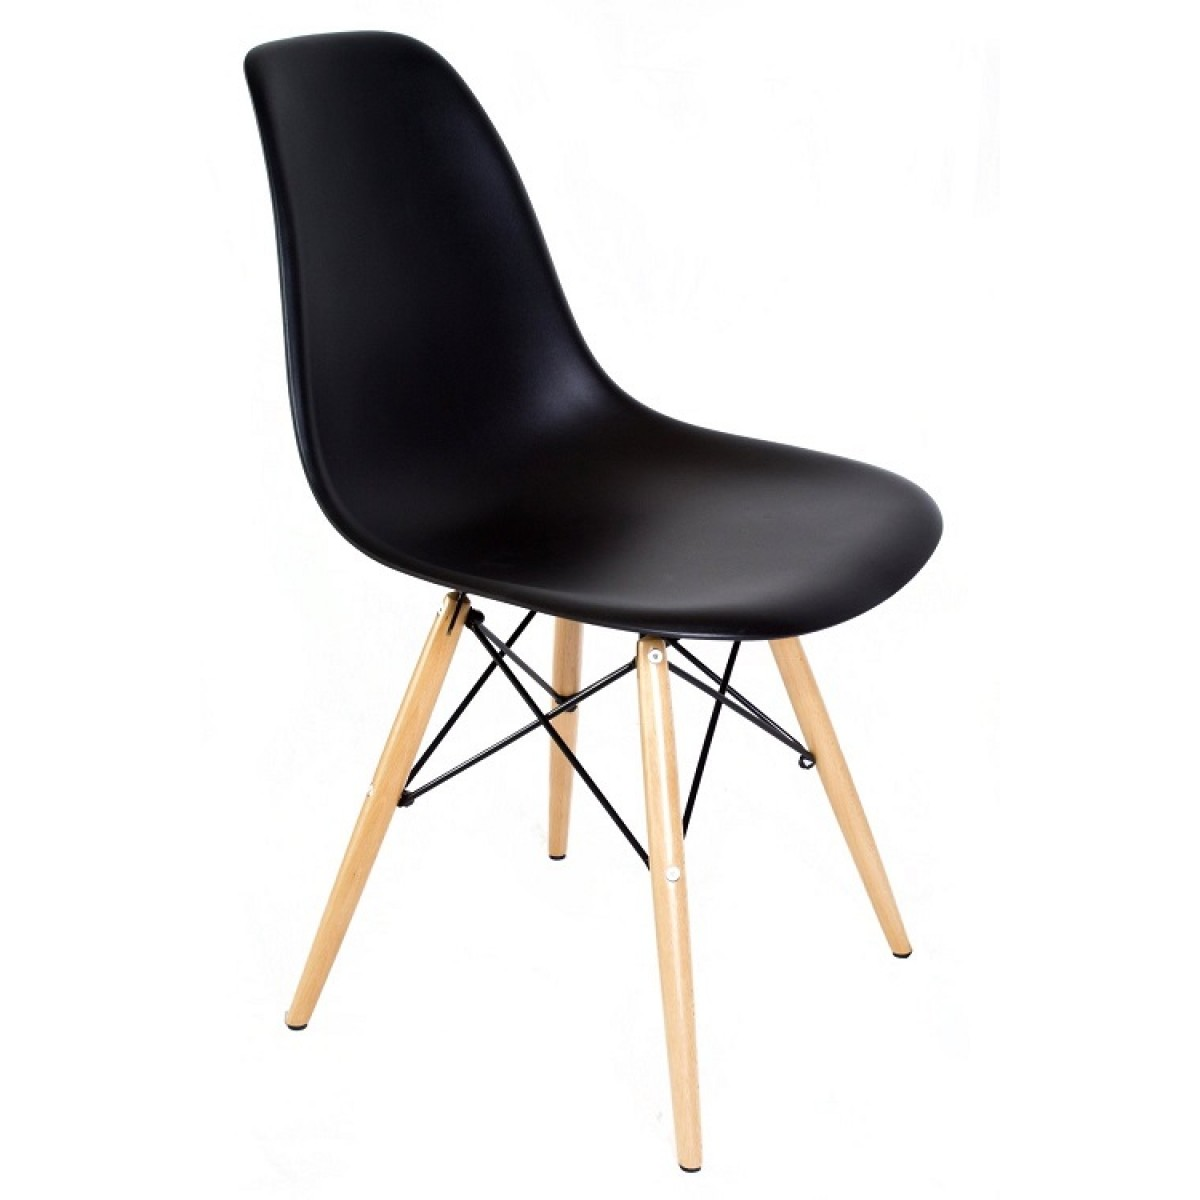 Black plastic chair - Dsw Molded Black Plastic Dining Shell Chair With Wood Eiffel Legs